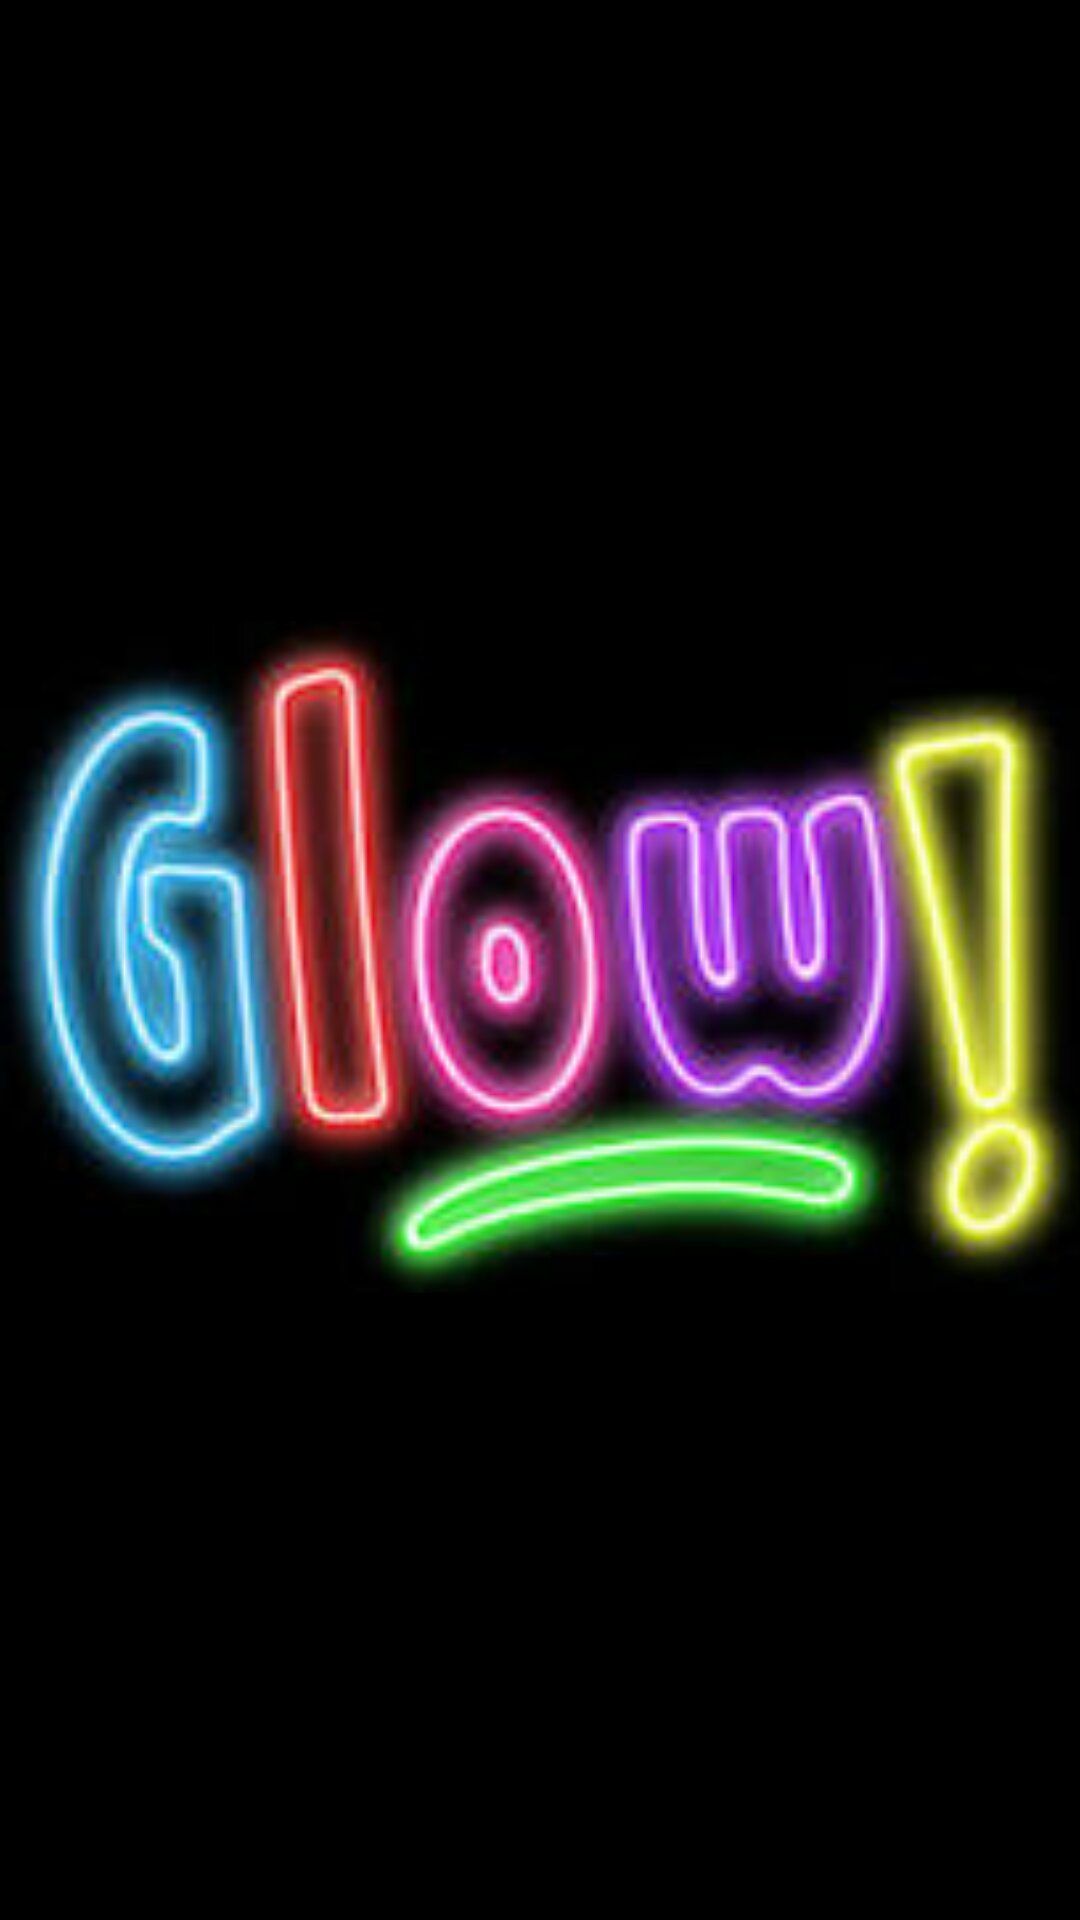 Glow in the dark clipart free download.